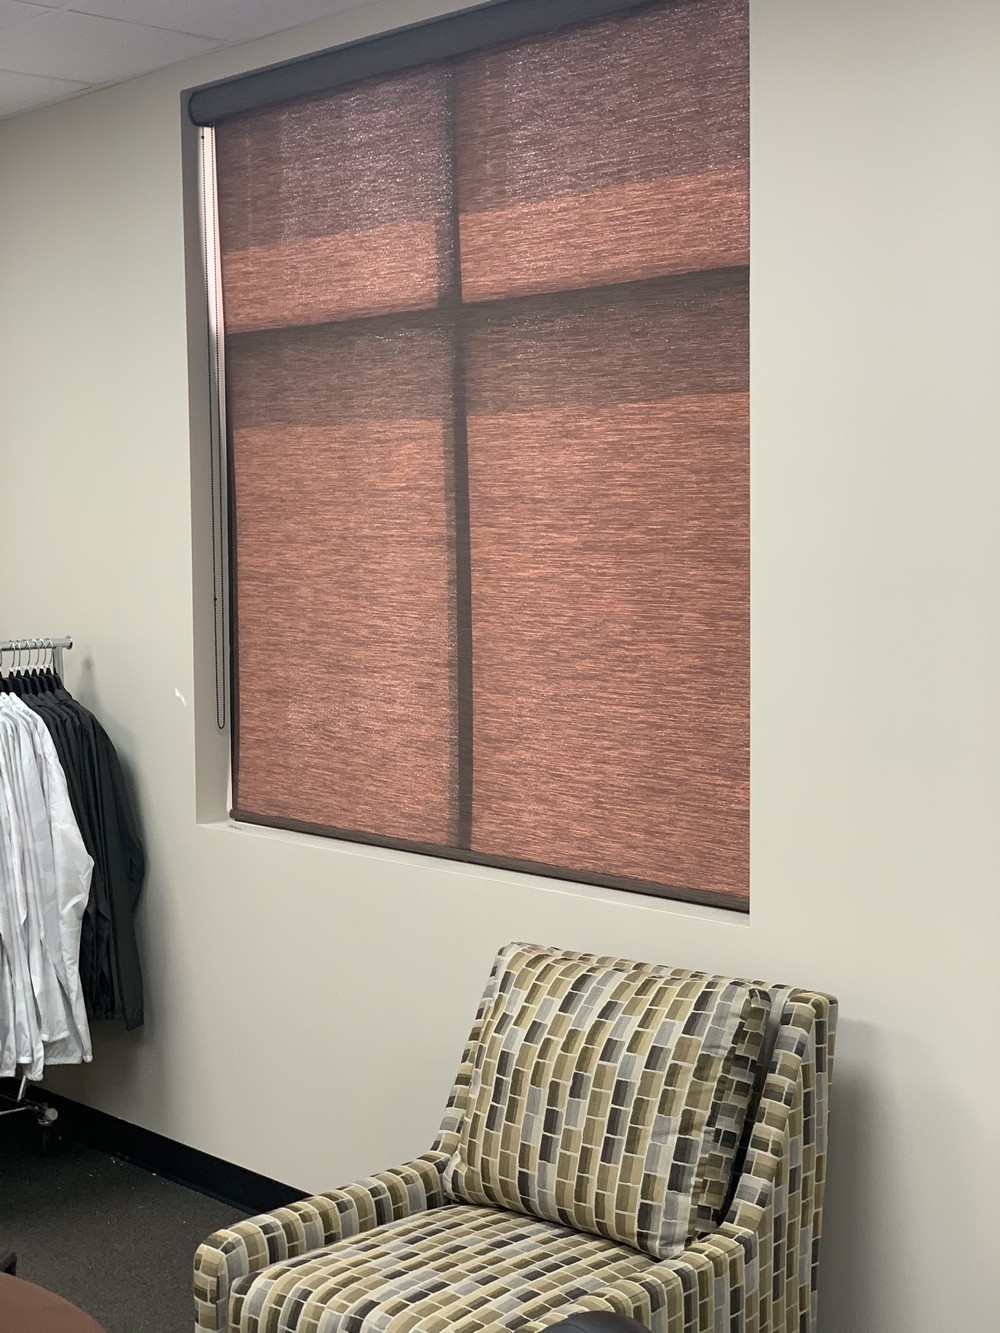 Roller Shades at Kyle Busch Rowdy Energy Drinks Corp Office on Cayuga Dr in Mooresville NC